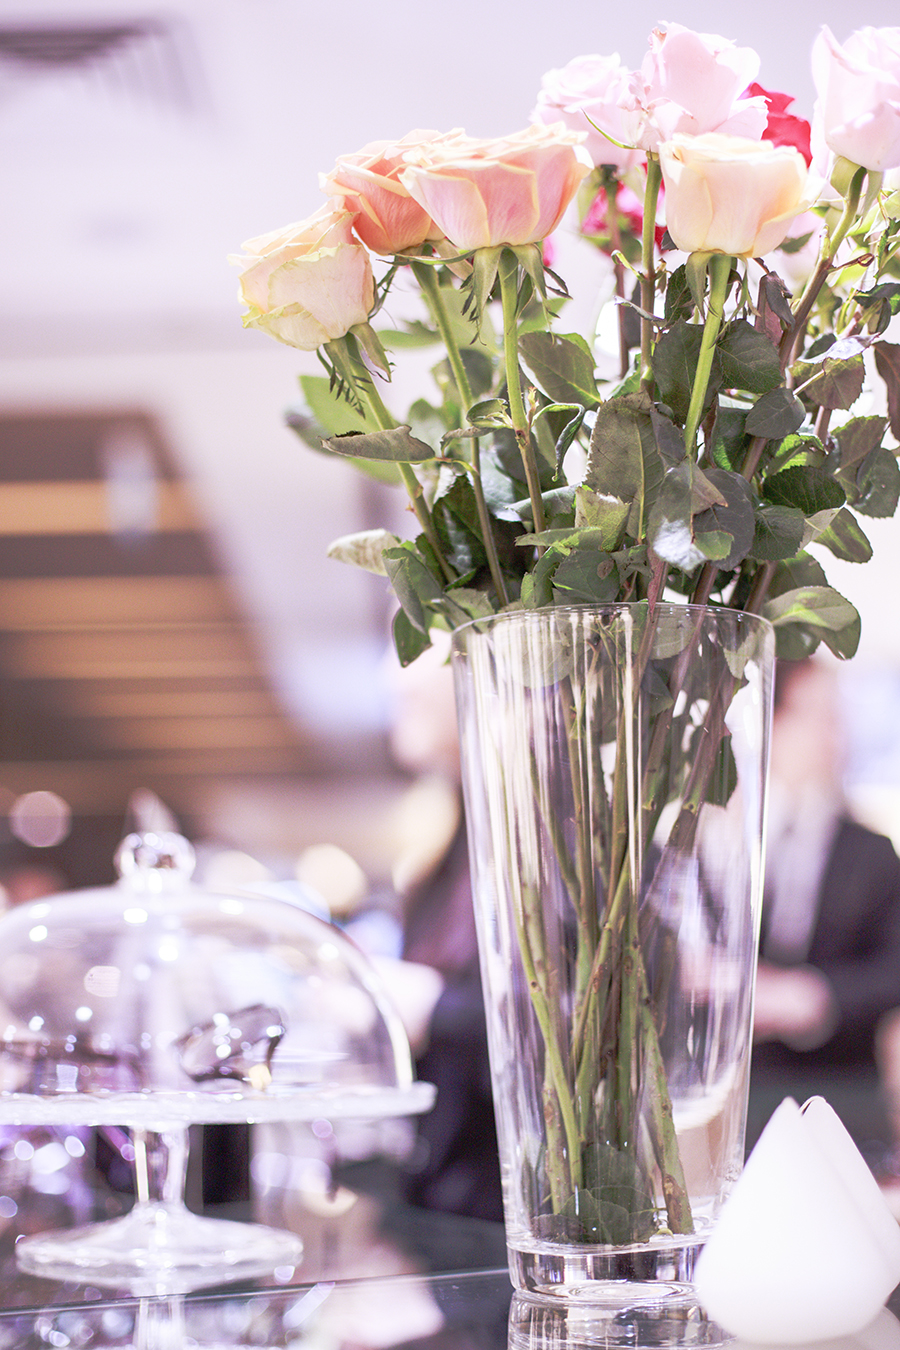 Decor and roses at the Her World x Optic Butler Event, Paragon, Singapore.